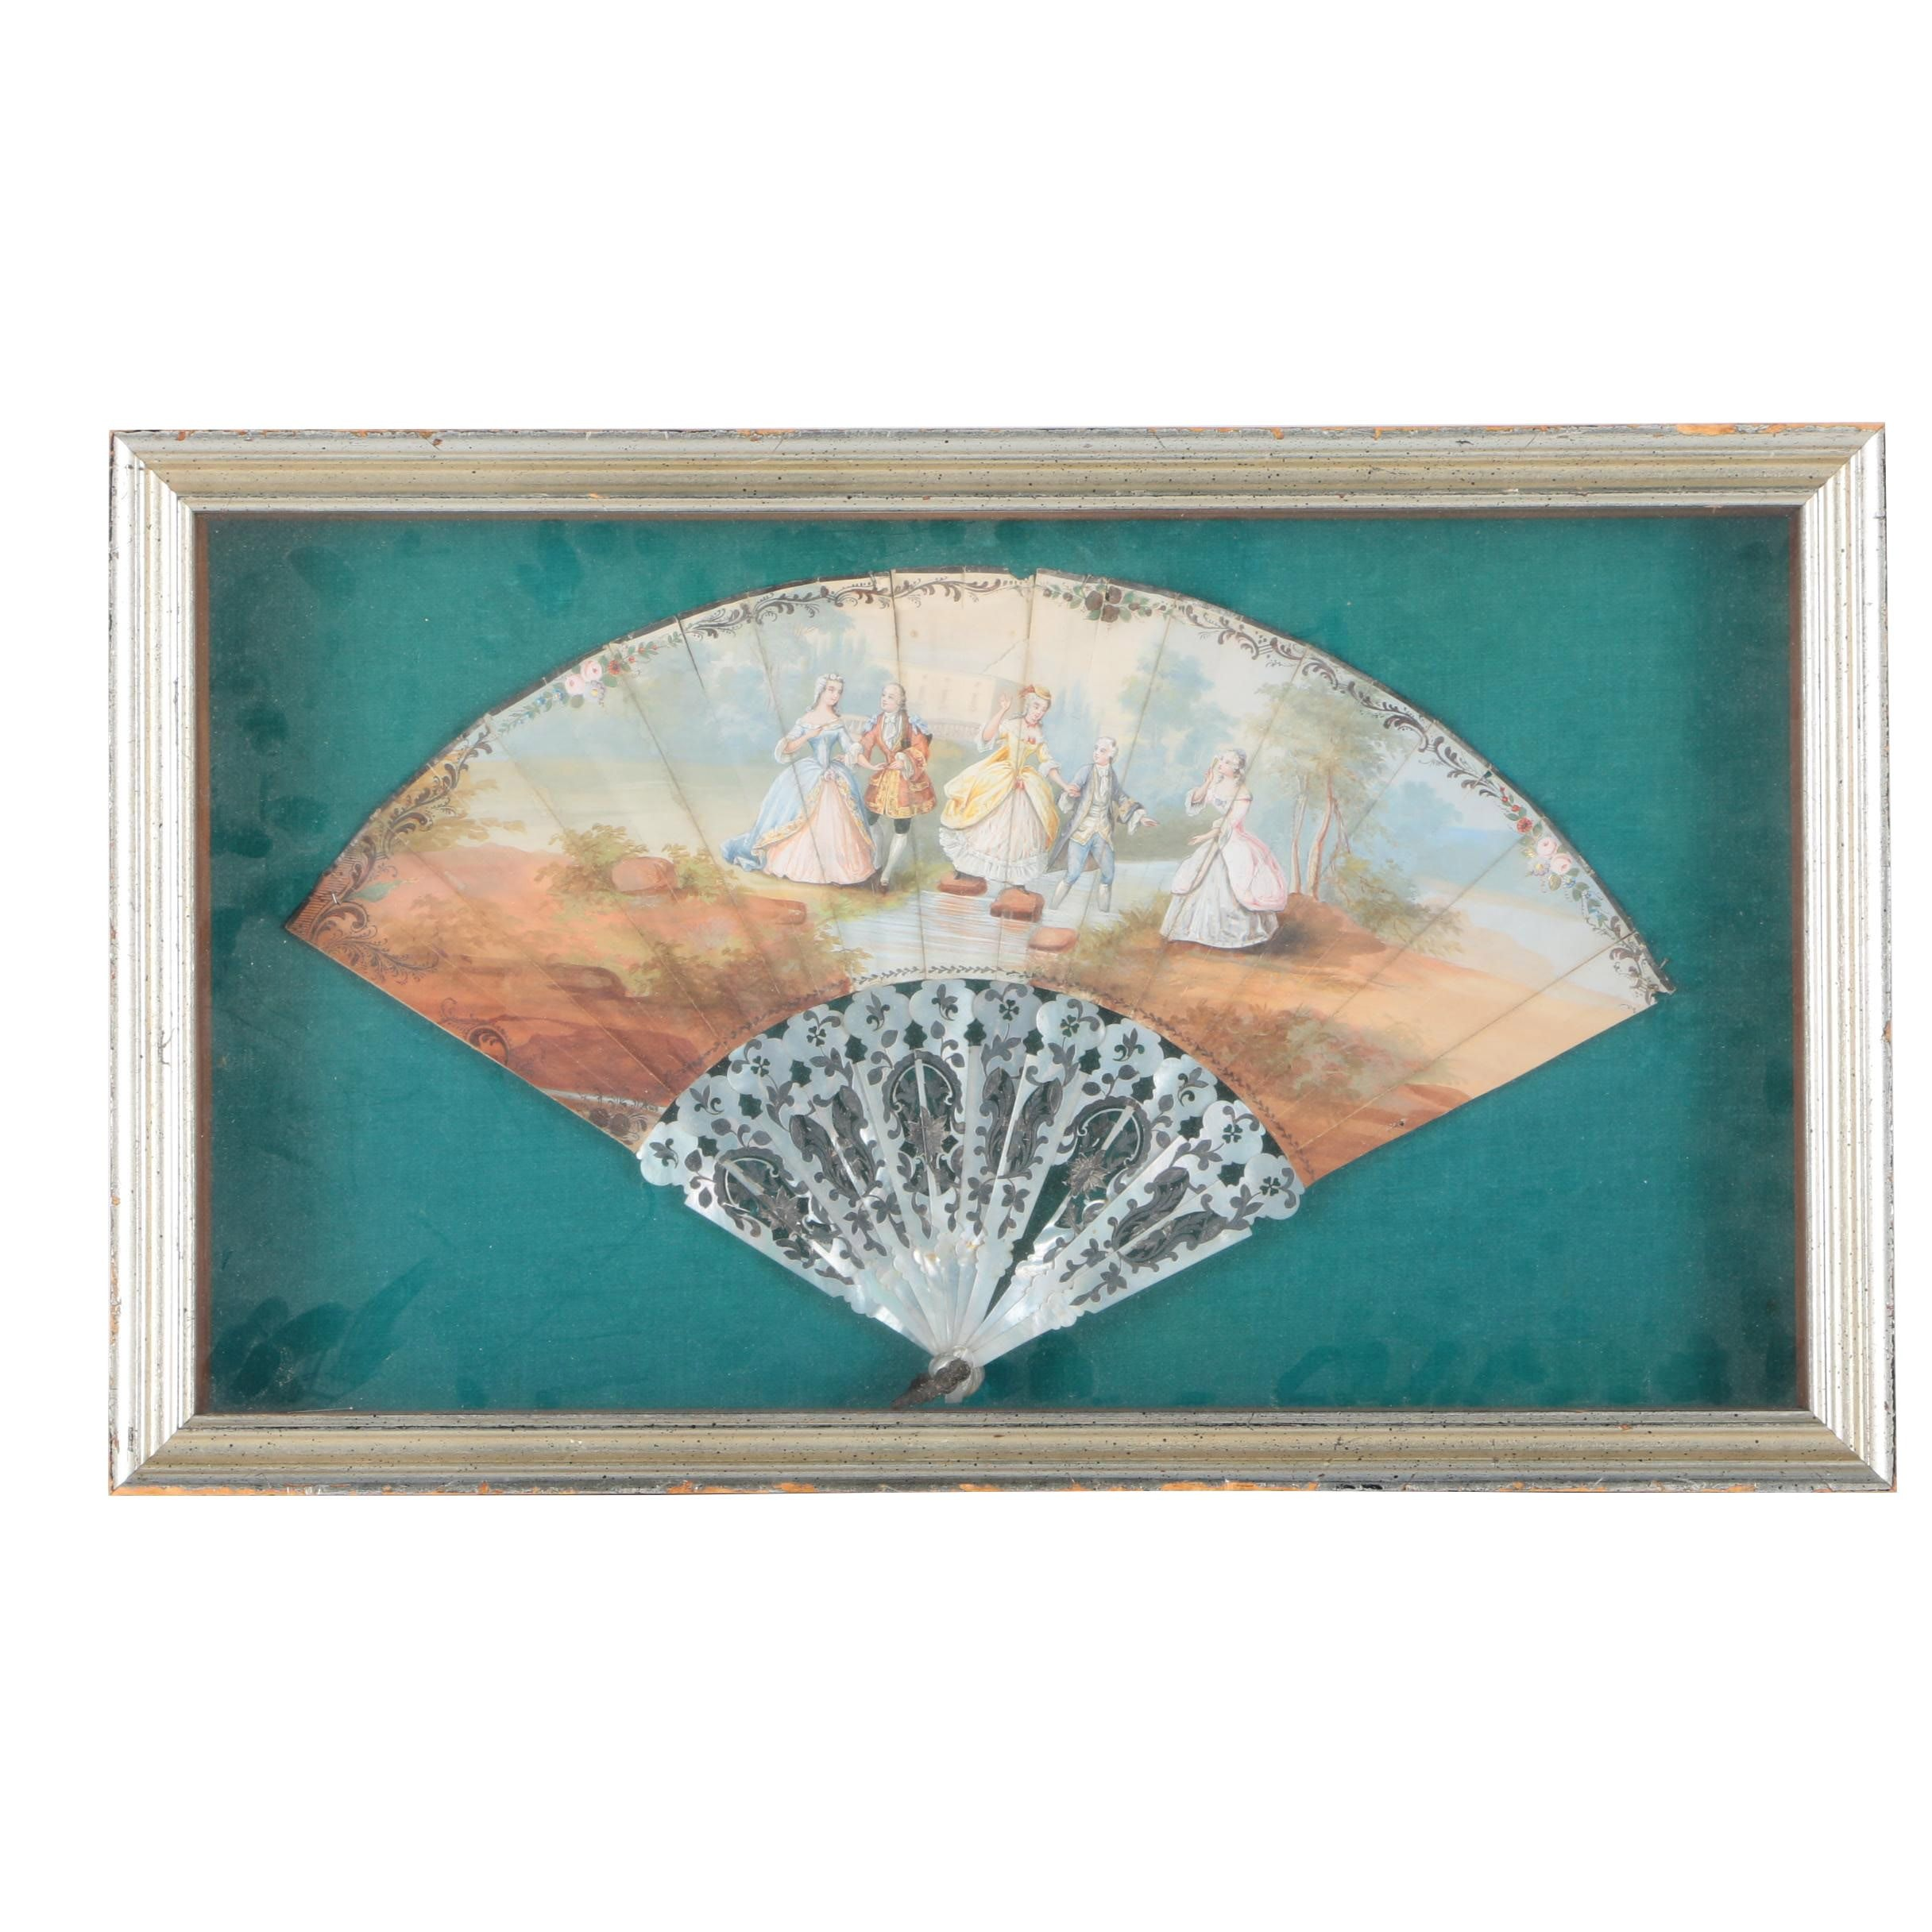 Framed Decorative Fan With Hand Painted Scene